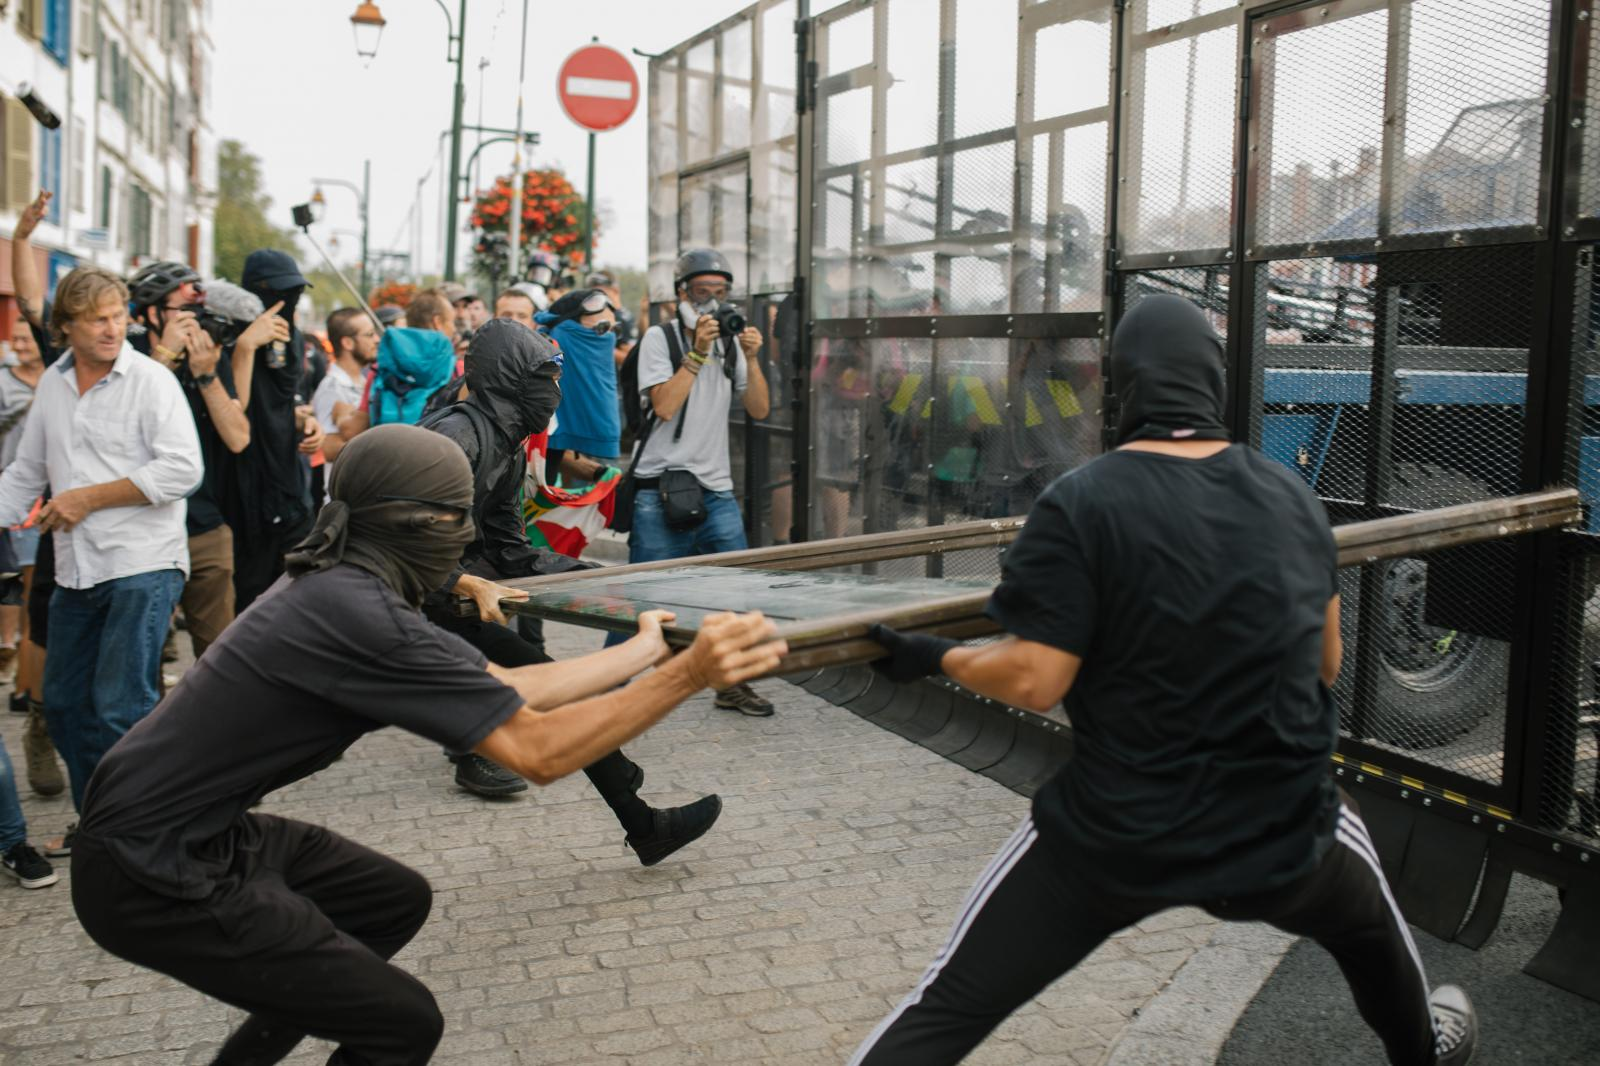 2019-08-24 - Activists ram a street sign into a police barrier on a bridge leading to Bayonne city center.